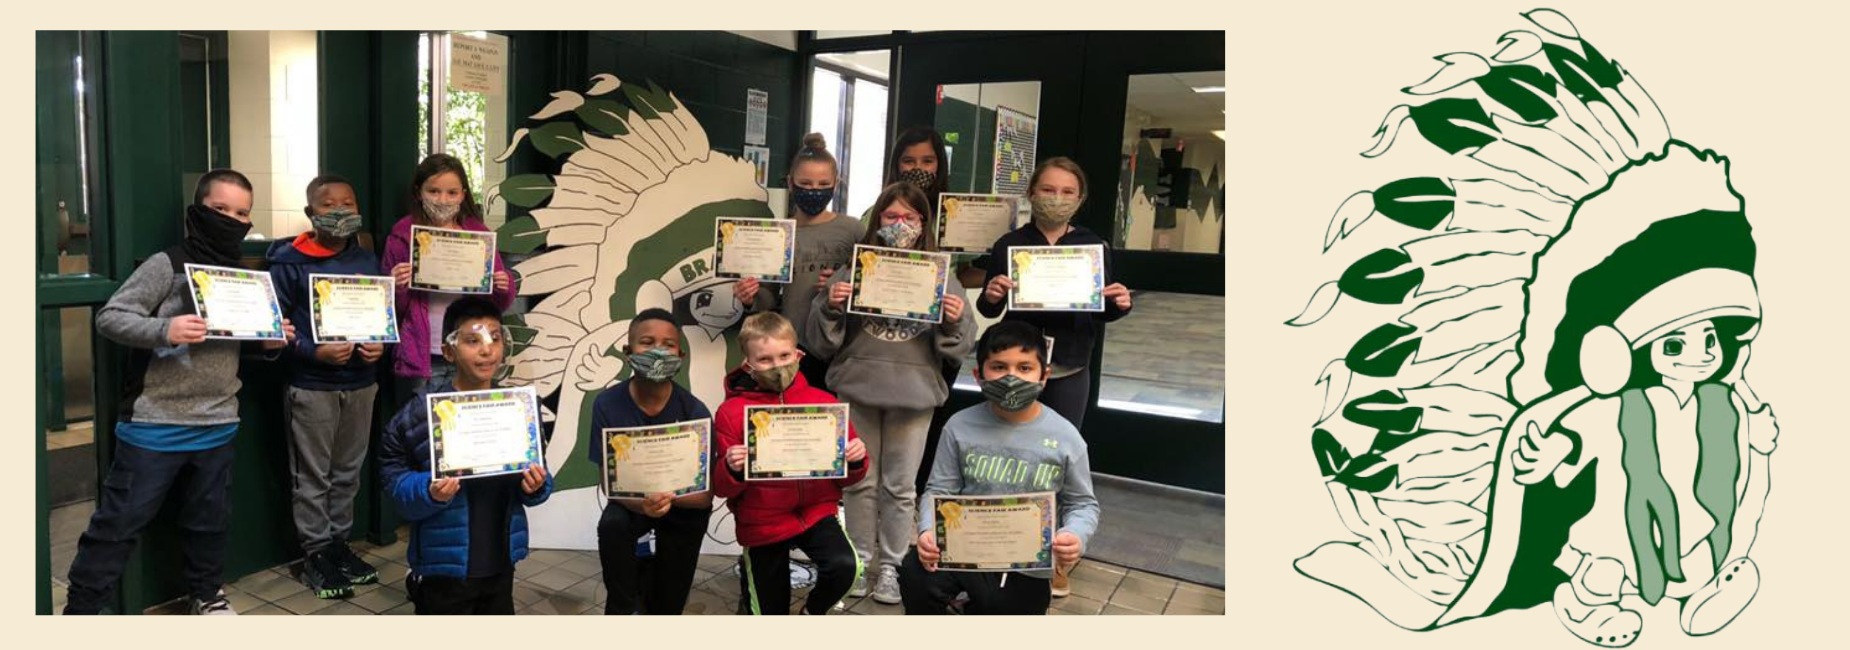 group of students in facemasks holding certificates beside the school logo